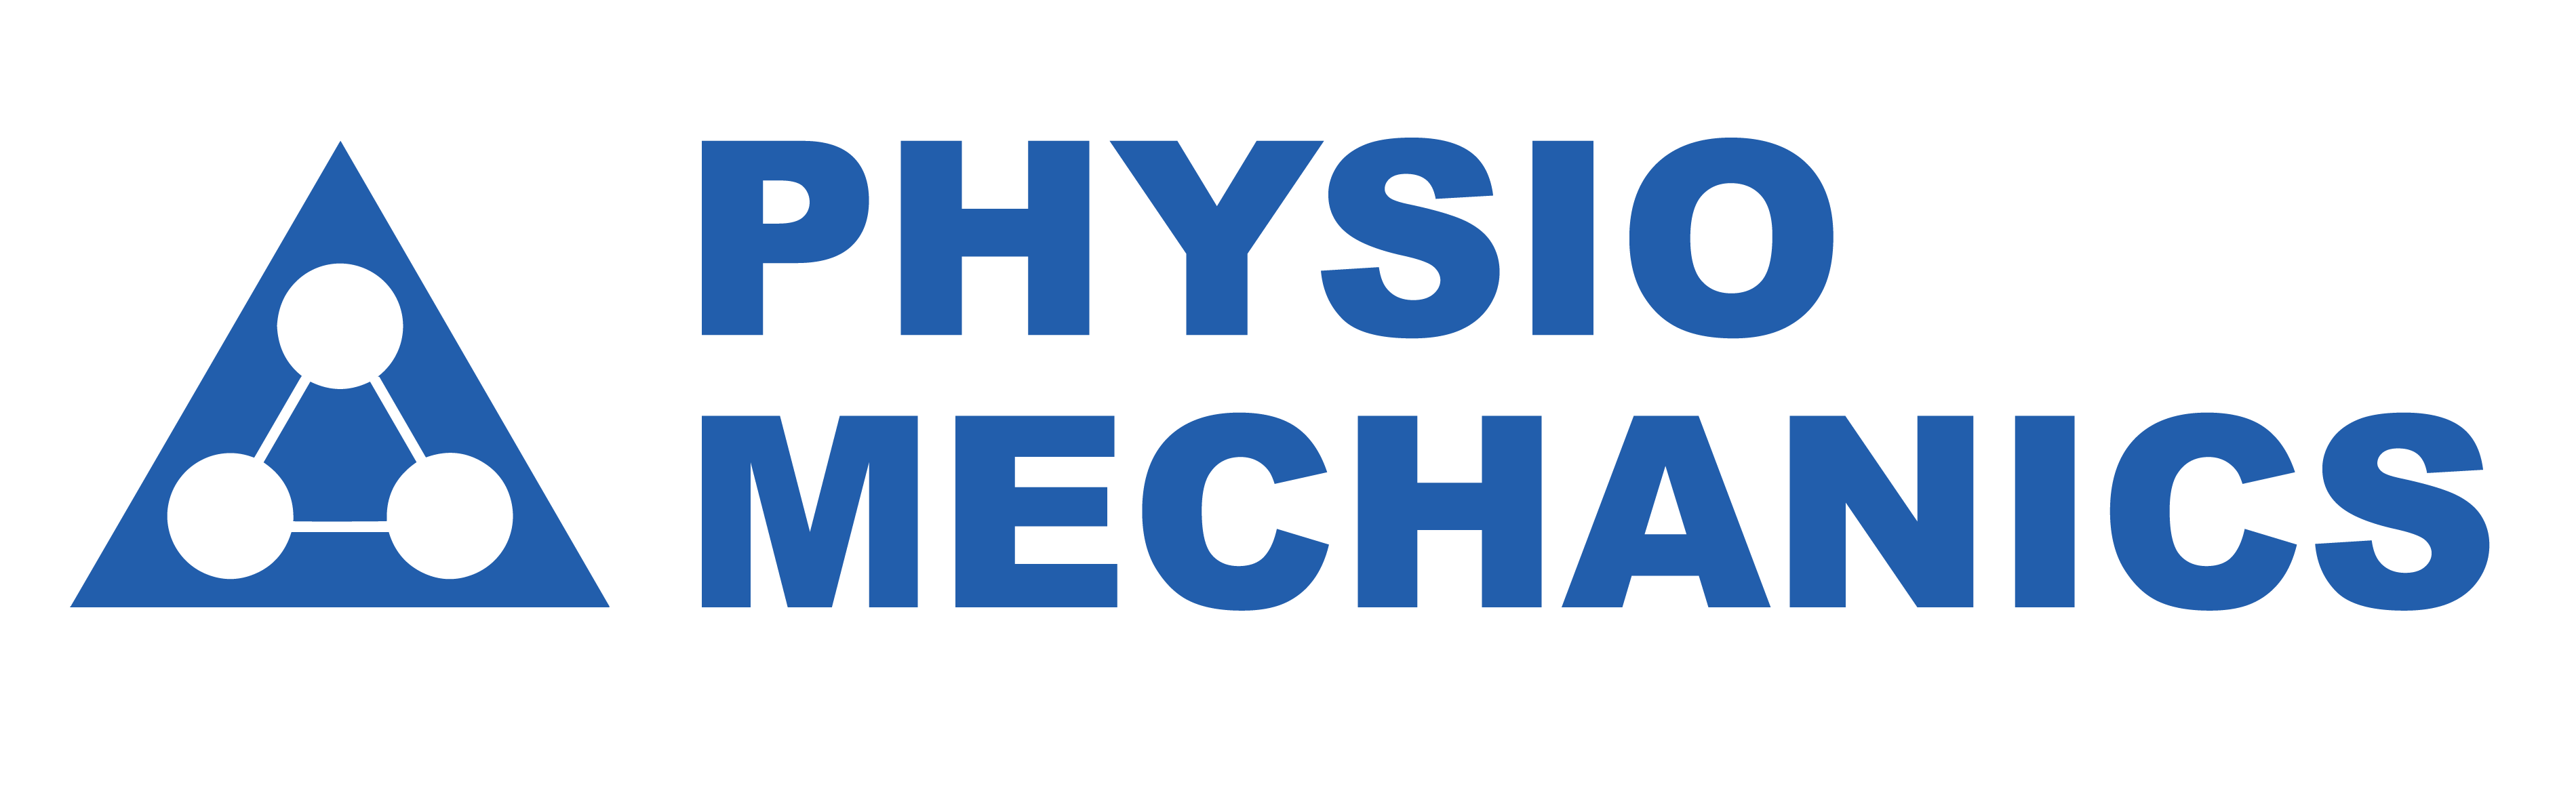 Physiomechanics